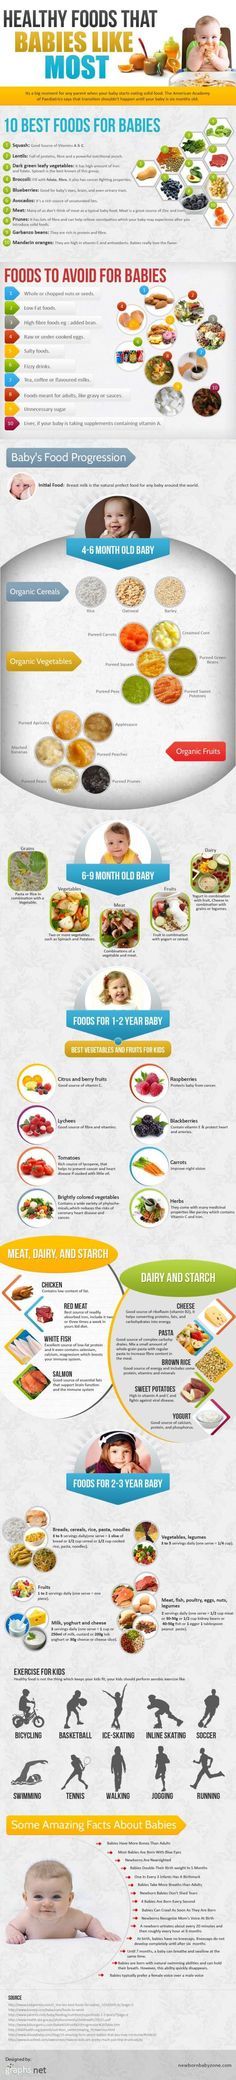 Healthy Foods That Babies Like - I think they go a little overboard with Organics but otherwise a great list.